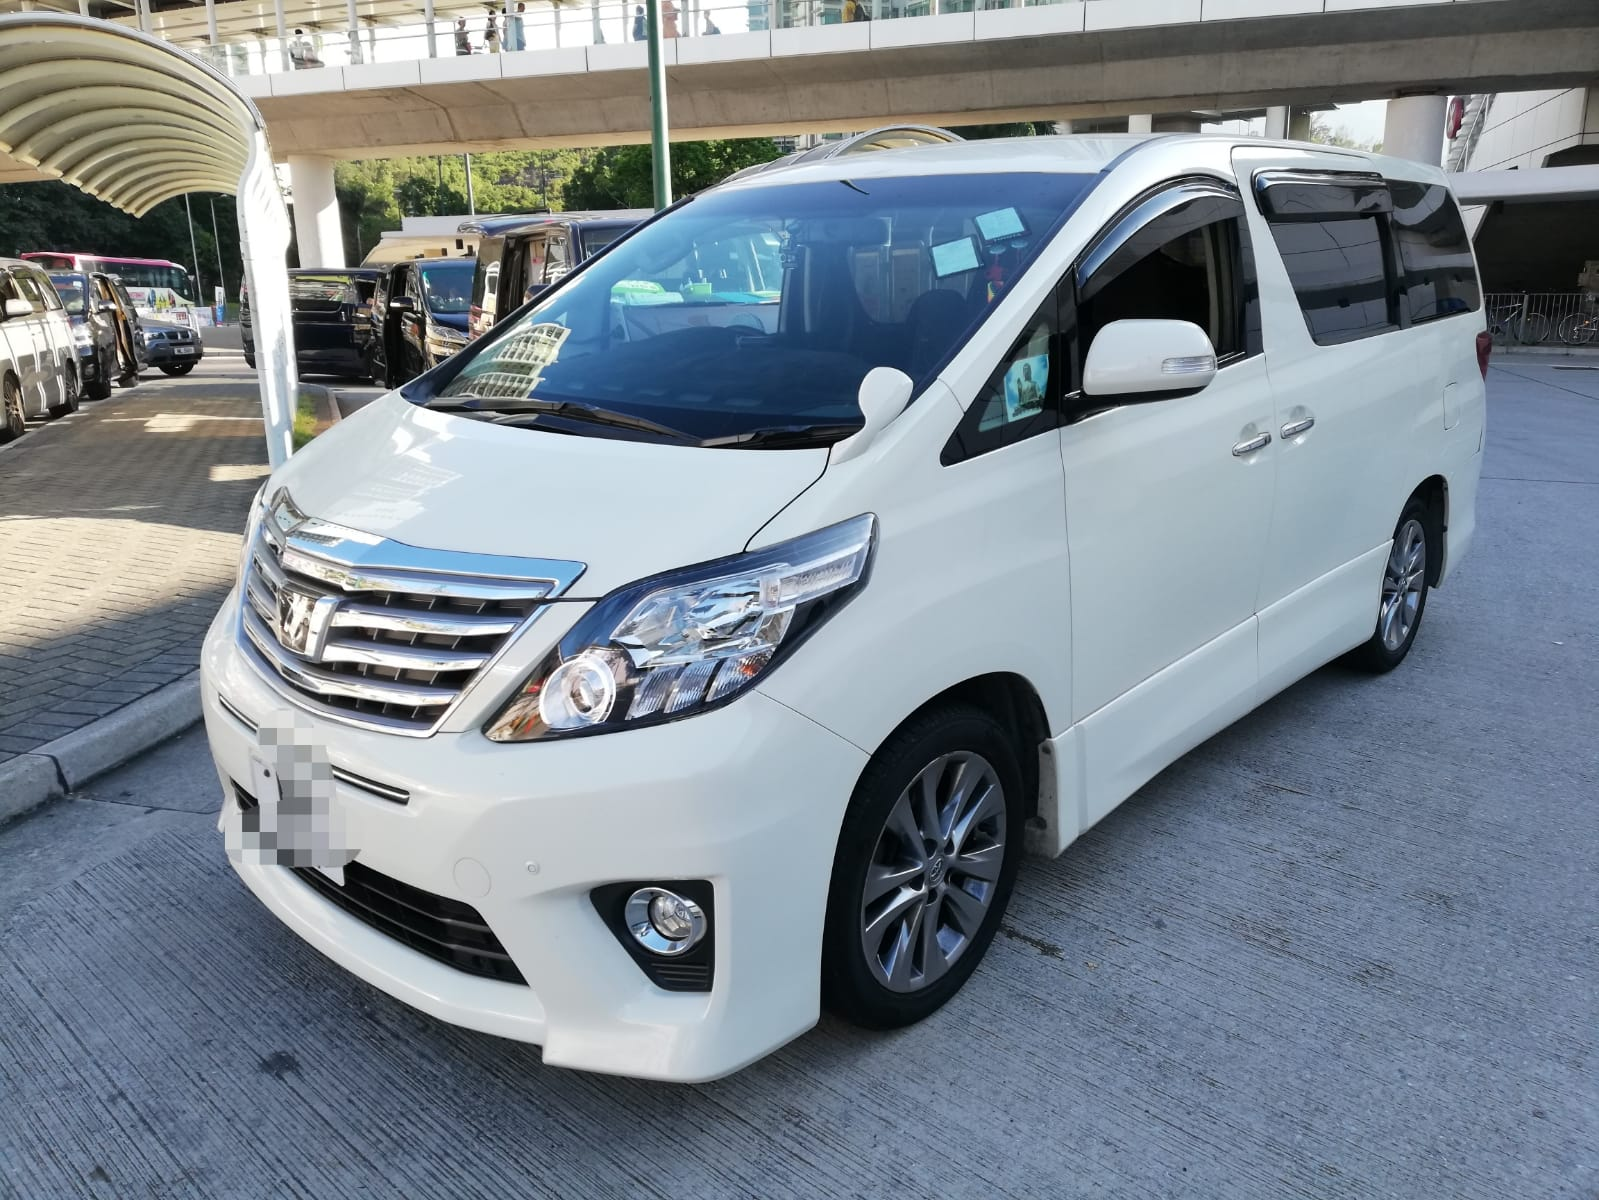 Private airport transfer Hong kong made easy by Hello! Tours